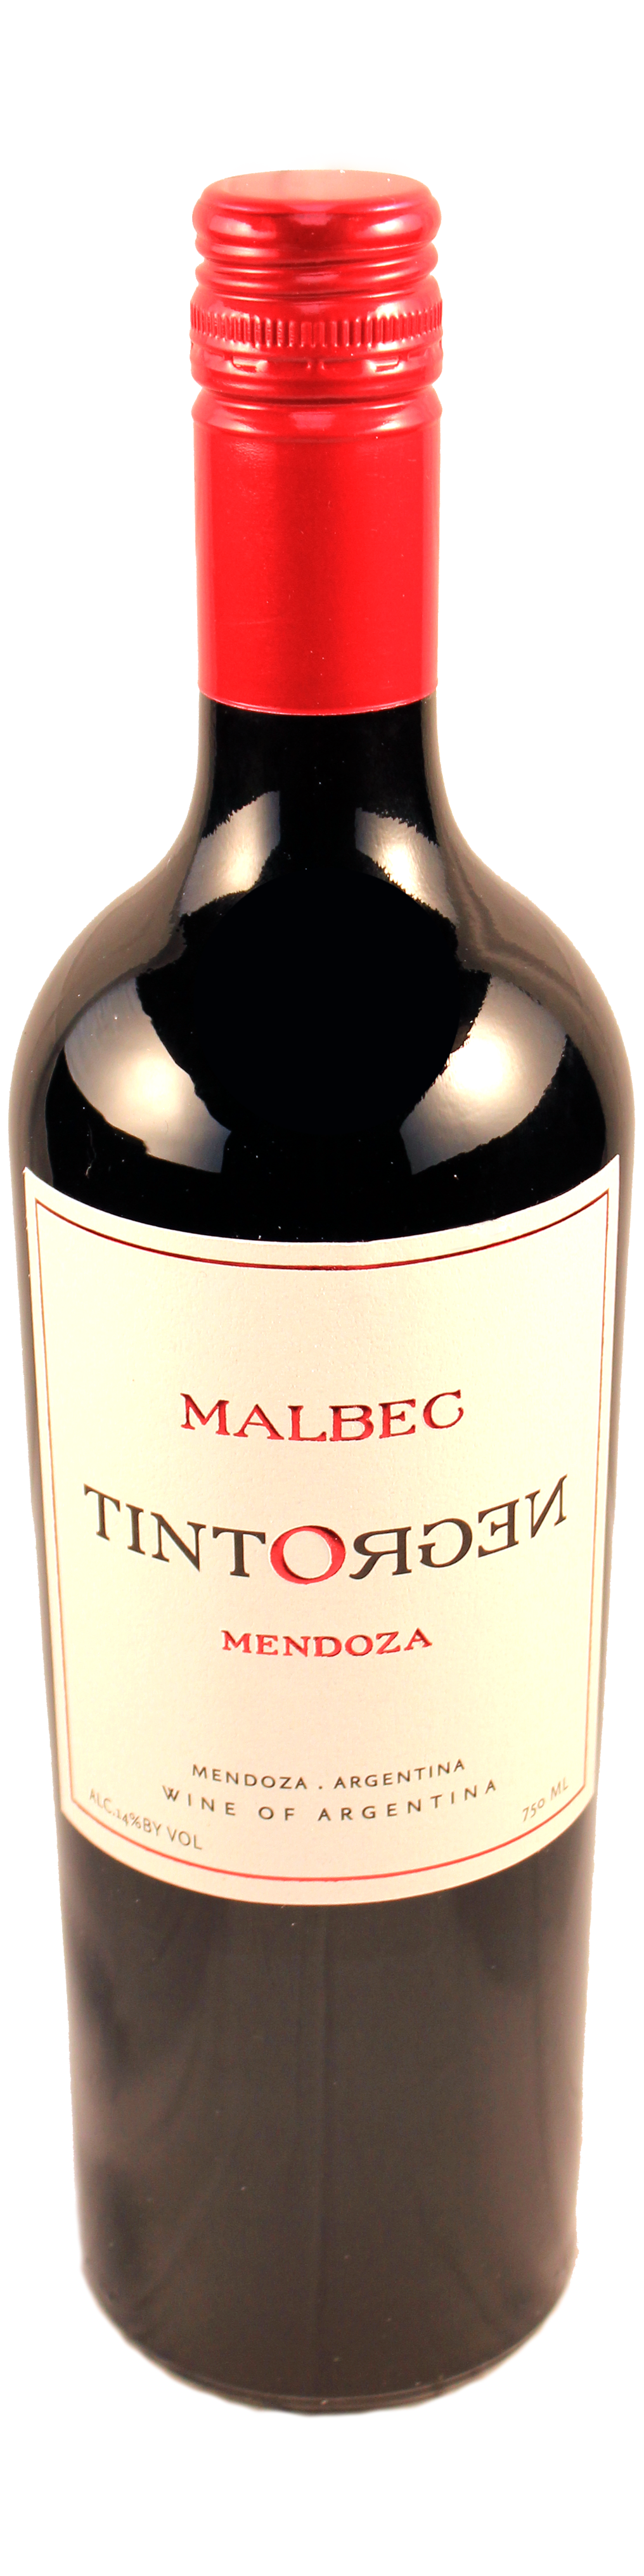 Image of product Malbec